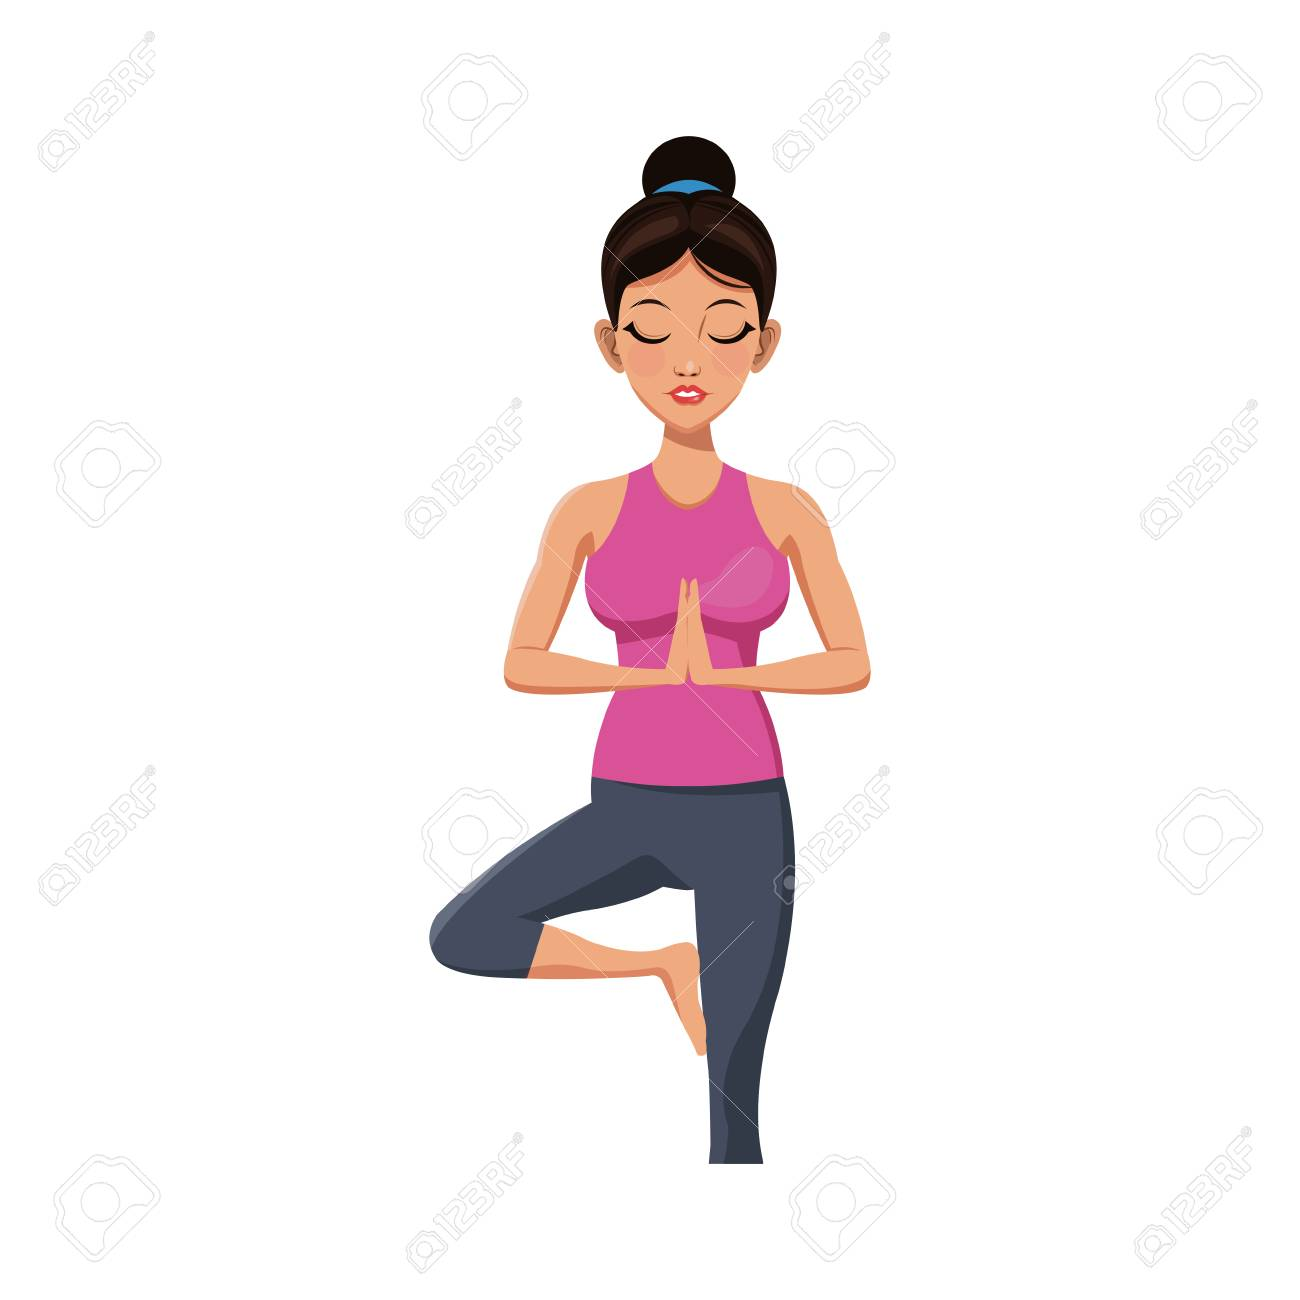 Girl Doing Yoga With Tree Pose Cartoon Icon Over White Background Royalty Free Cliparts Vectors And Stock Illustration Image 75578879 Find images of cartoon tree. girl doing yoga with tree pose cartoon icon over white background